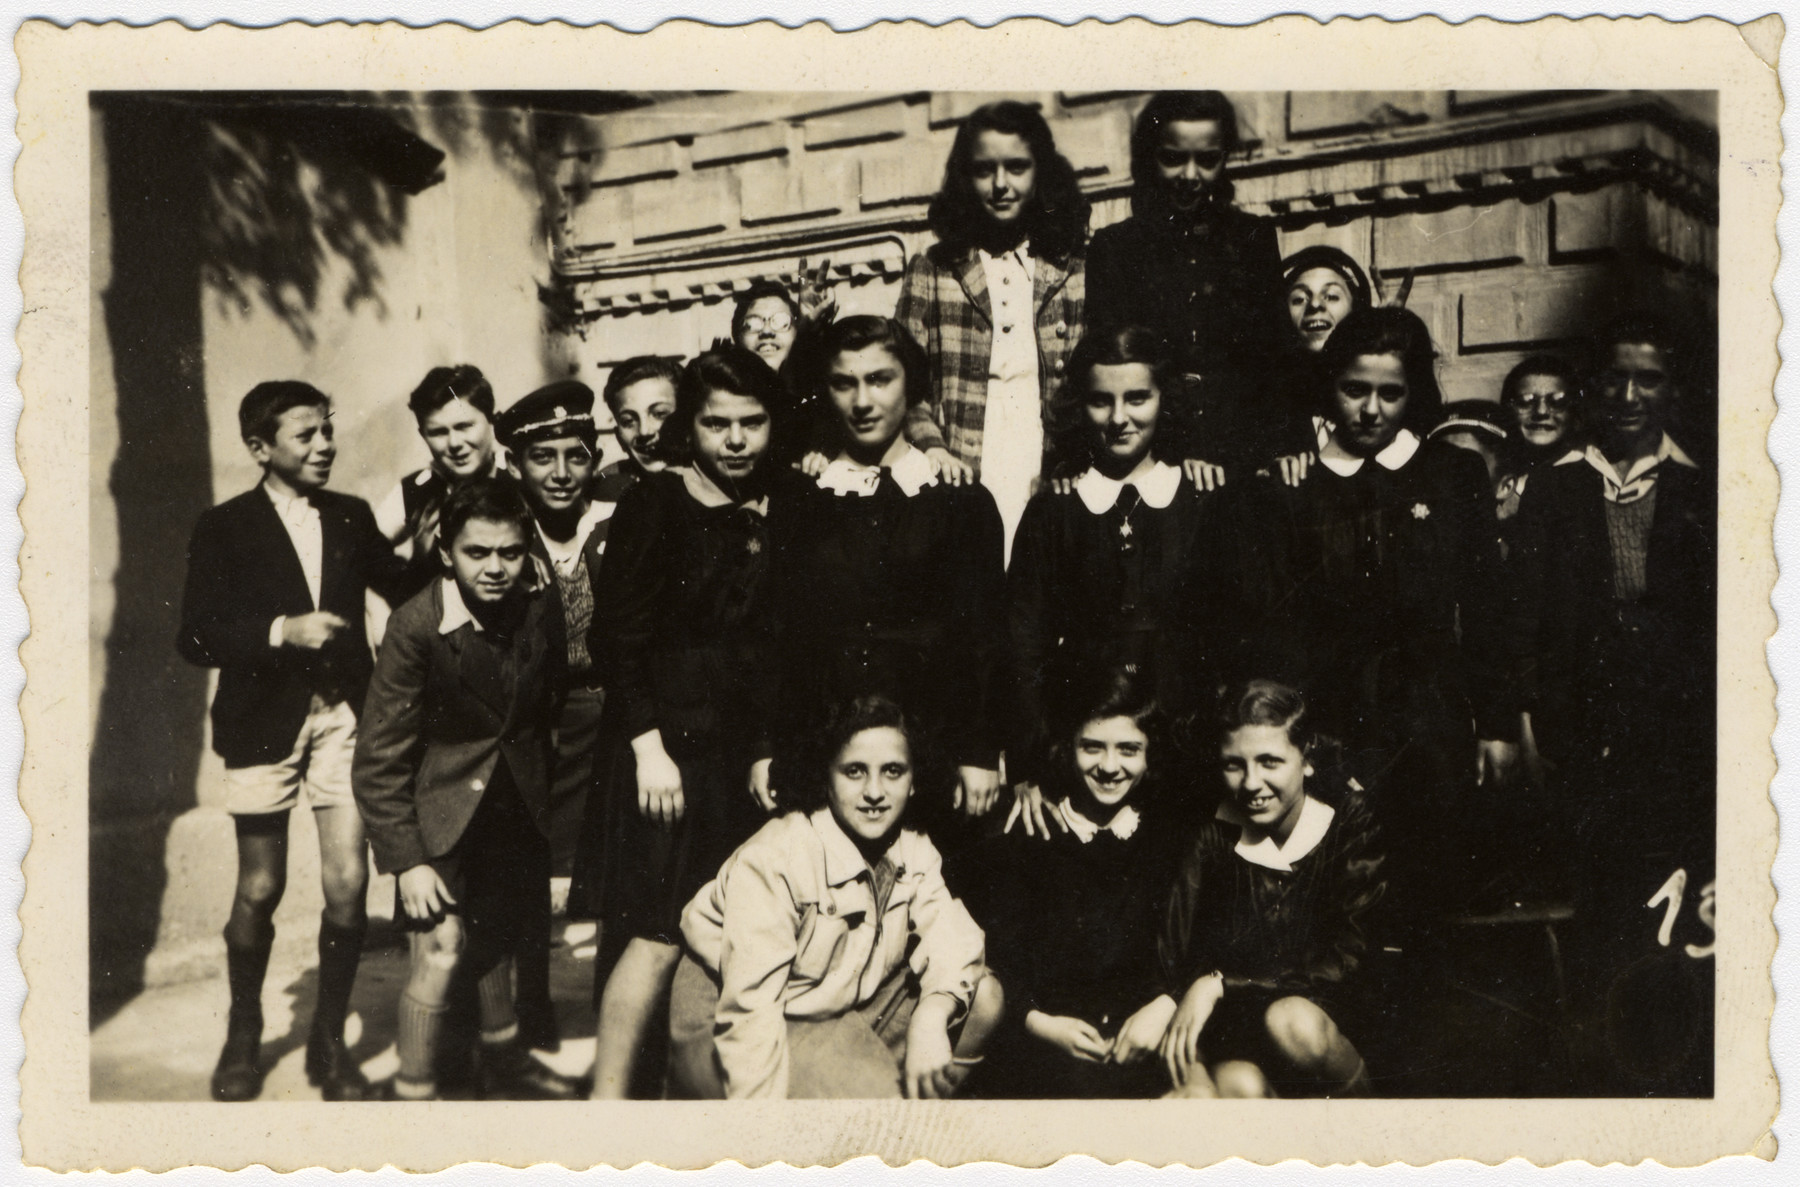 Students wearing Stars of David in the Hebrew middle school in Sofia.  After the German army took over the school building, classes were held in the synagogue.  Among those pictured are Albert Farhi and Israel Borouchof.  Of those pictured, two of the boys later died in Israel's War of Independence.